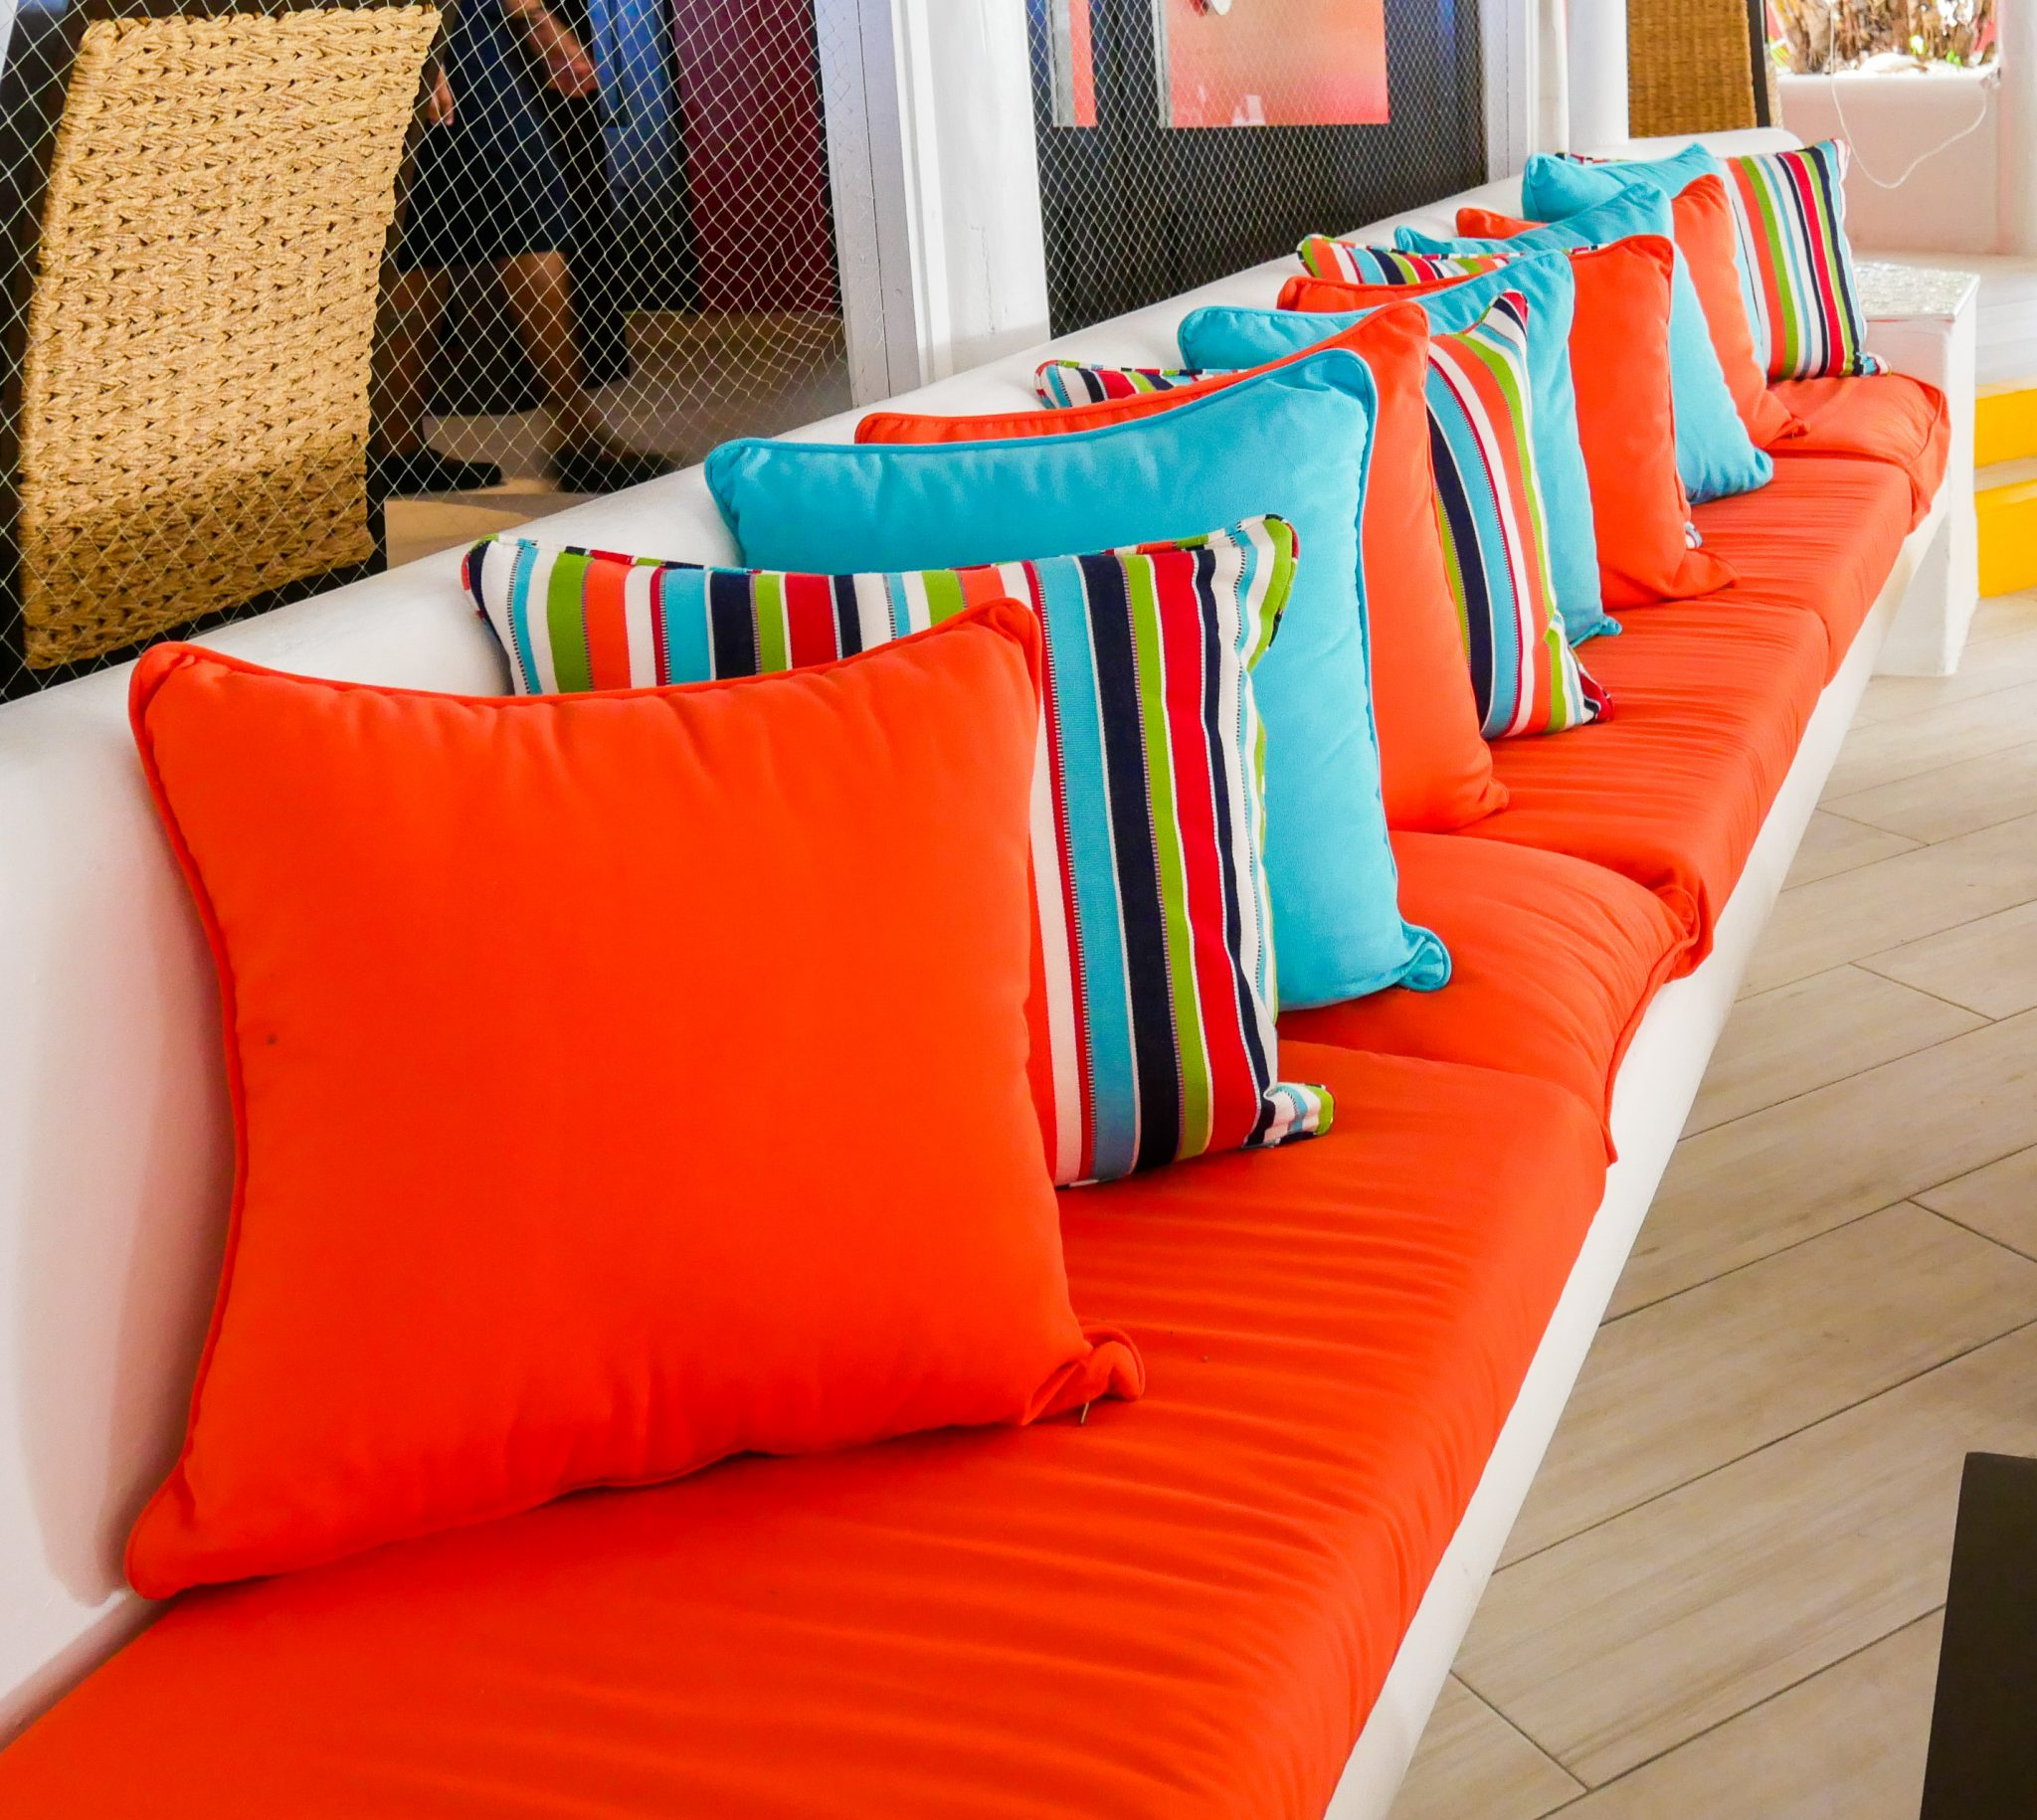 A long beach with lots of orange cushions